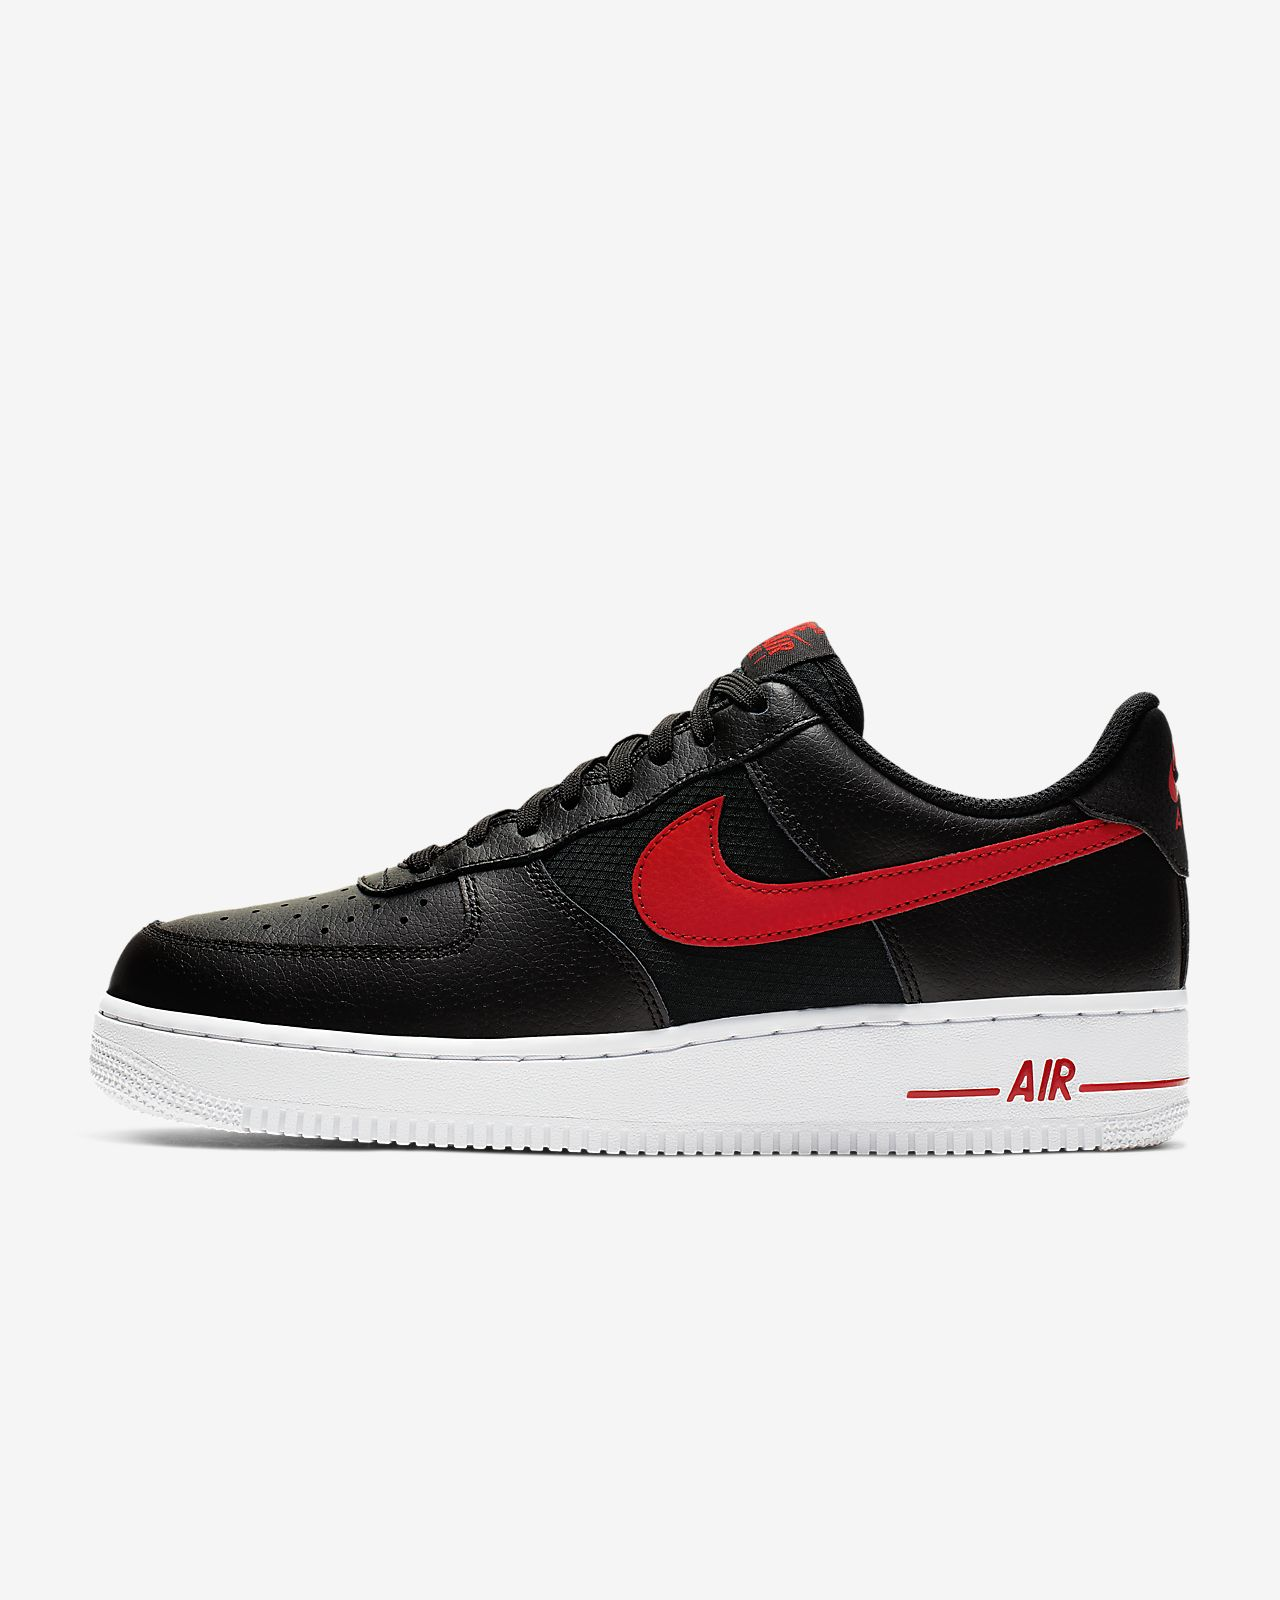 uk availability a40bc 780ca ... Sko Nike Air Force 1  07 LV8 för män